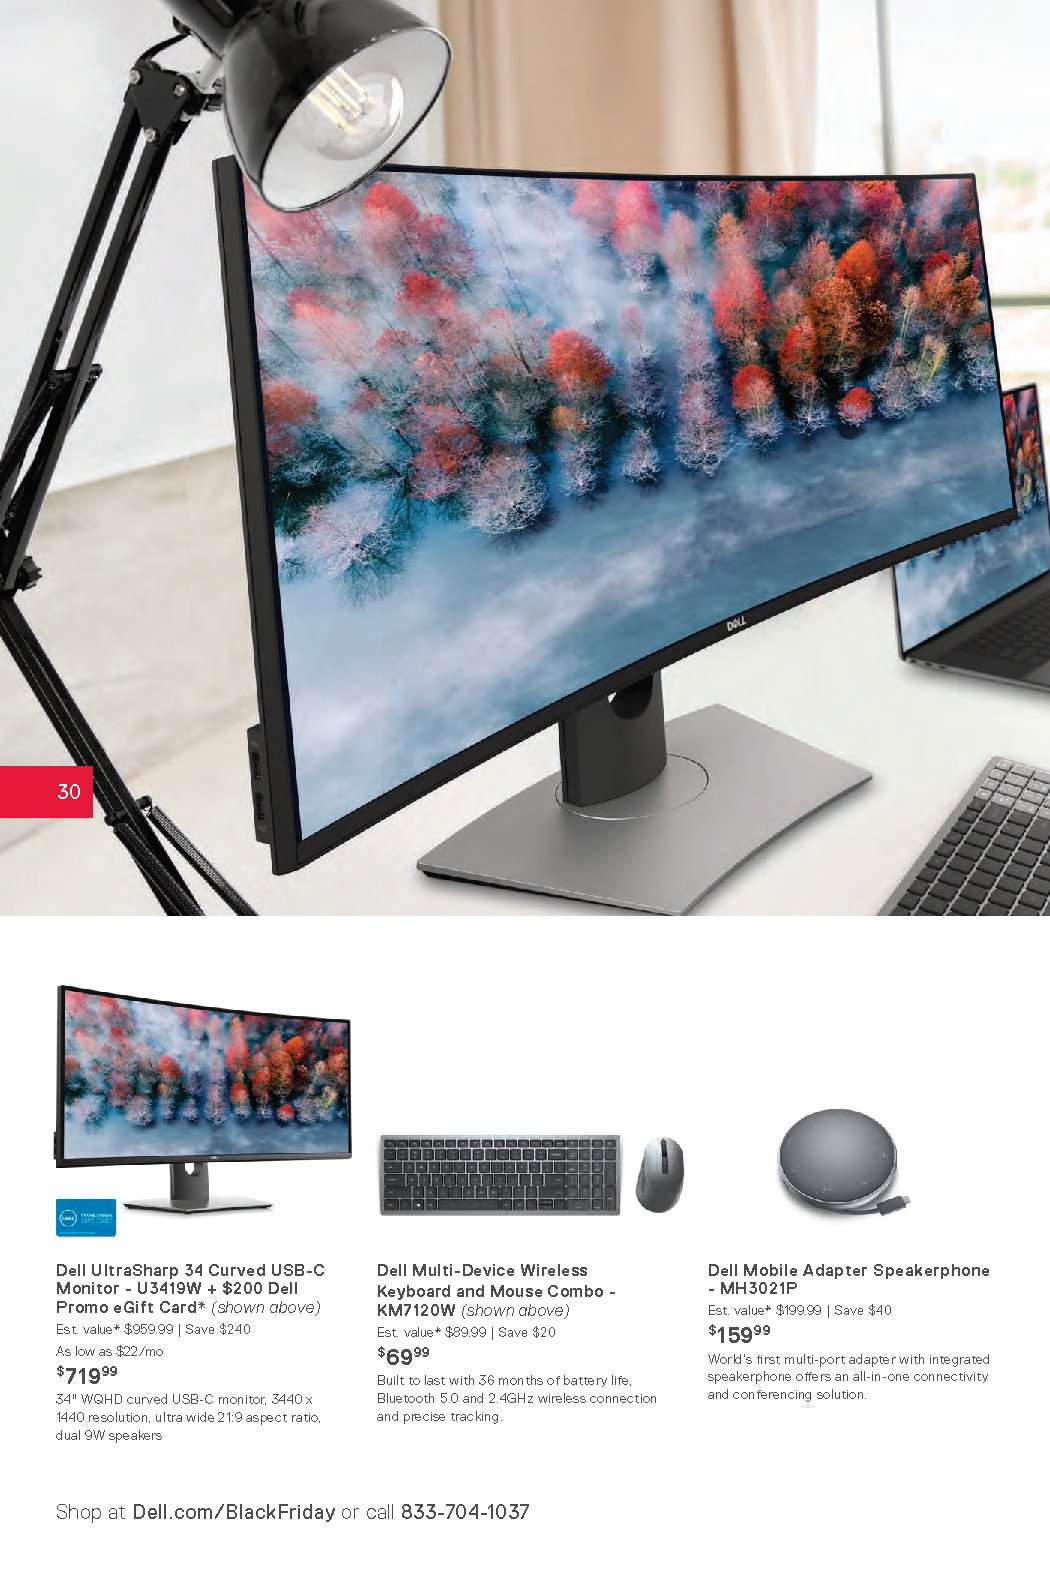 Dell Black Friday 2020 Page 30